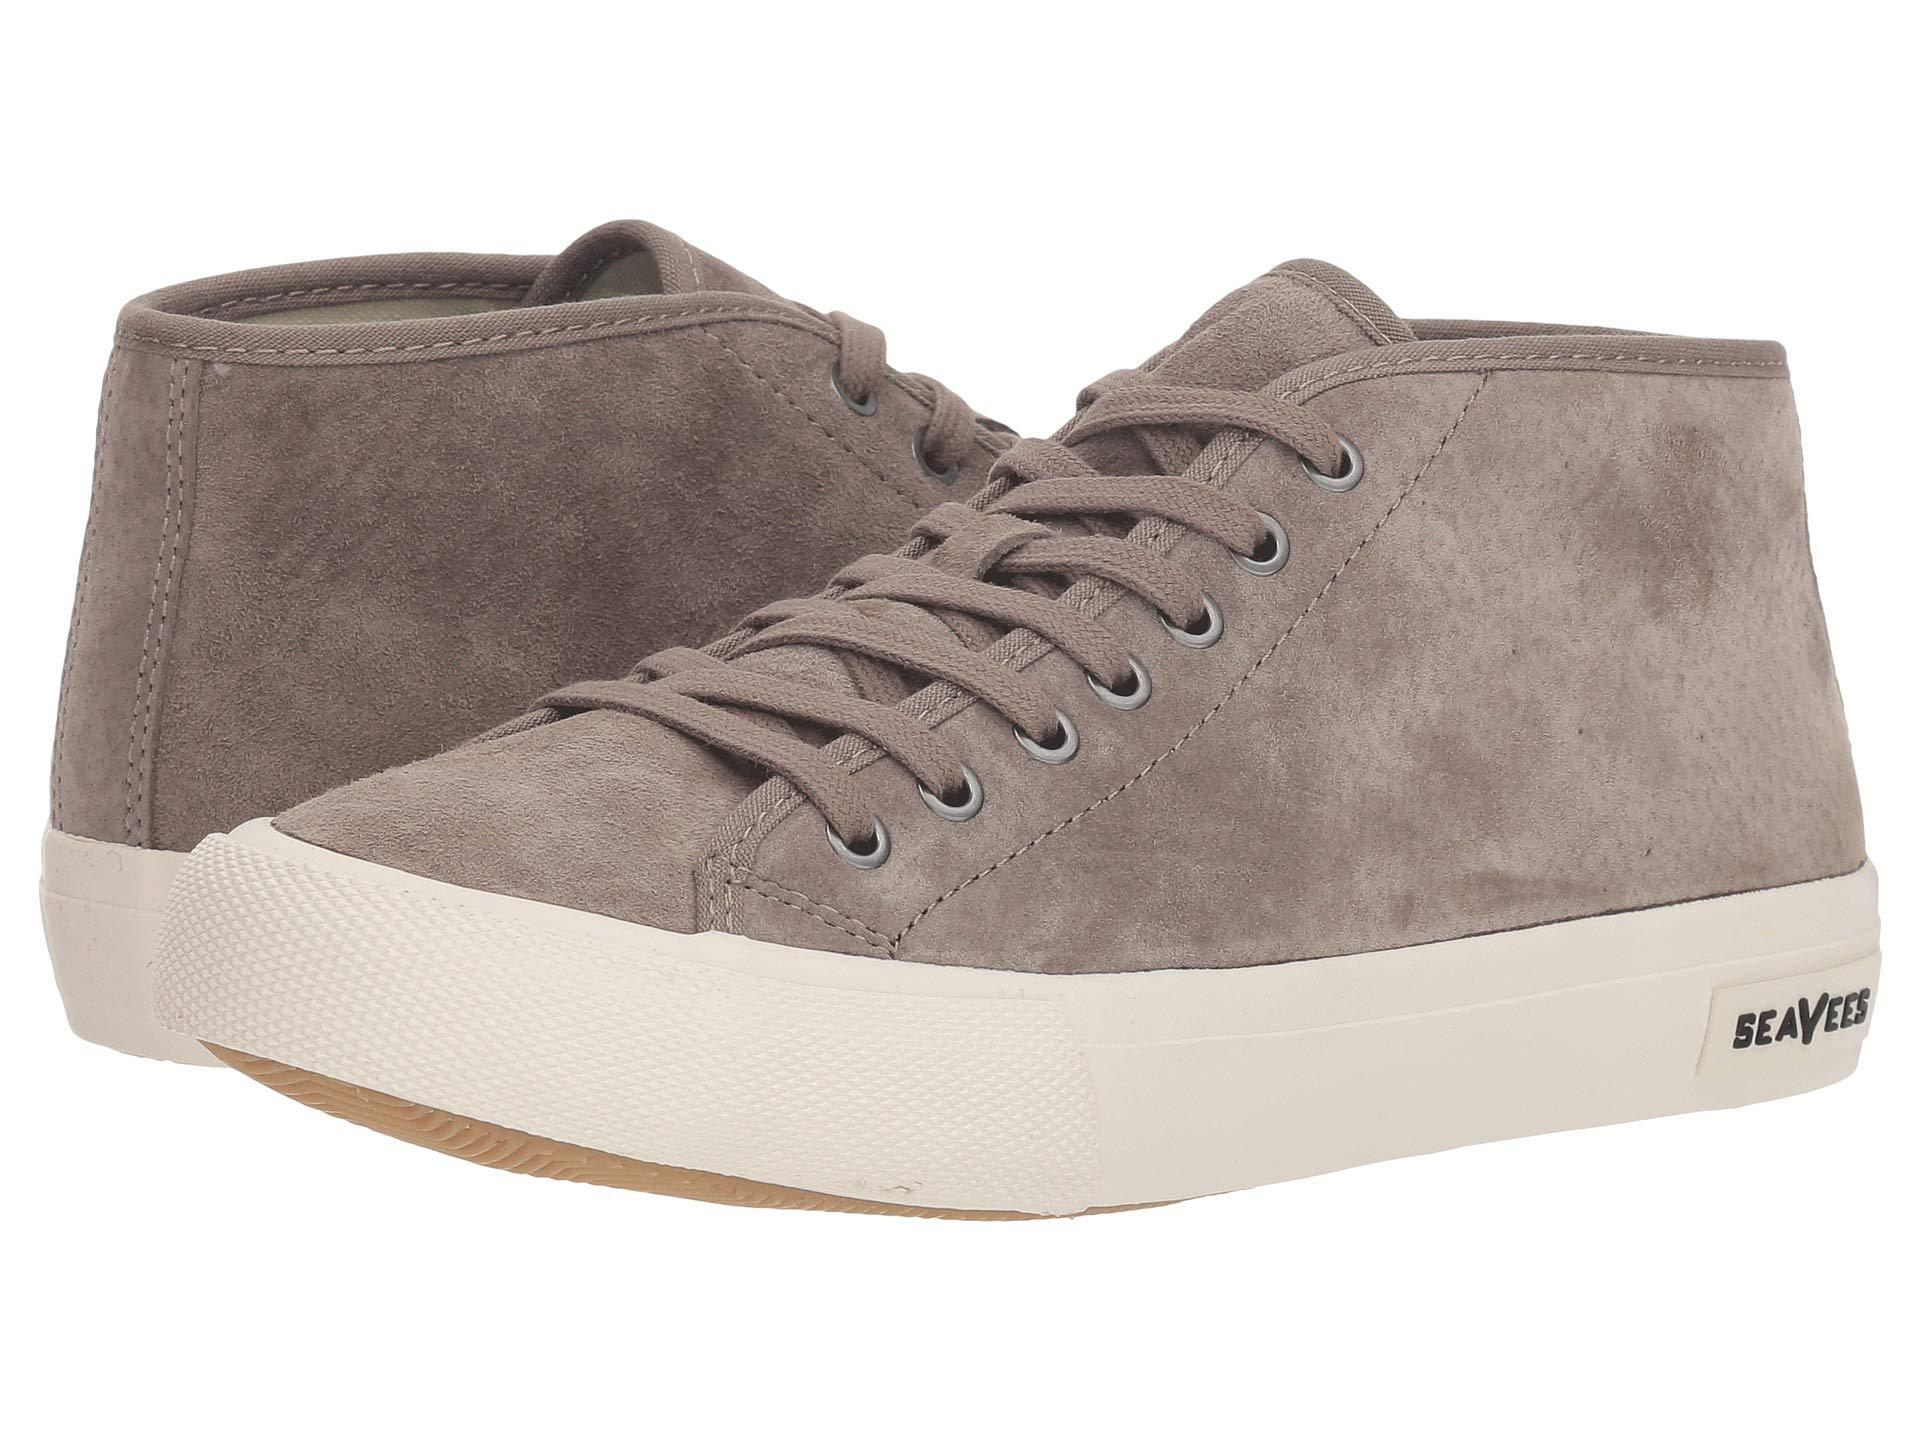 945d30ac846 Lyst - Seavees Ca Special (rose Dust) Women s Shoes